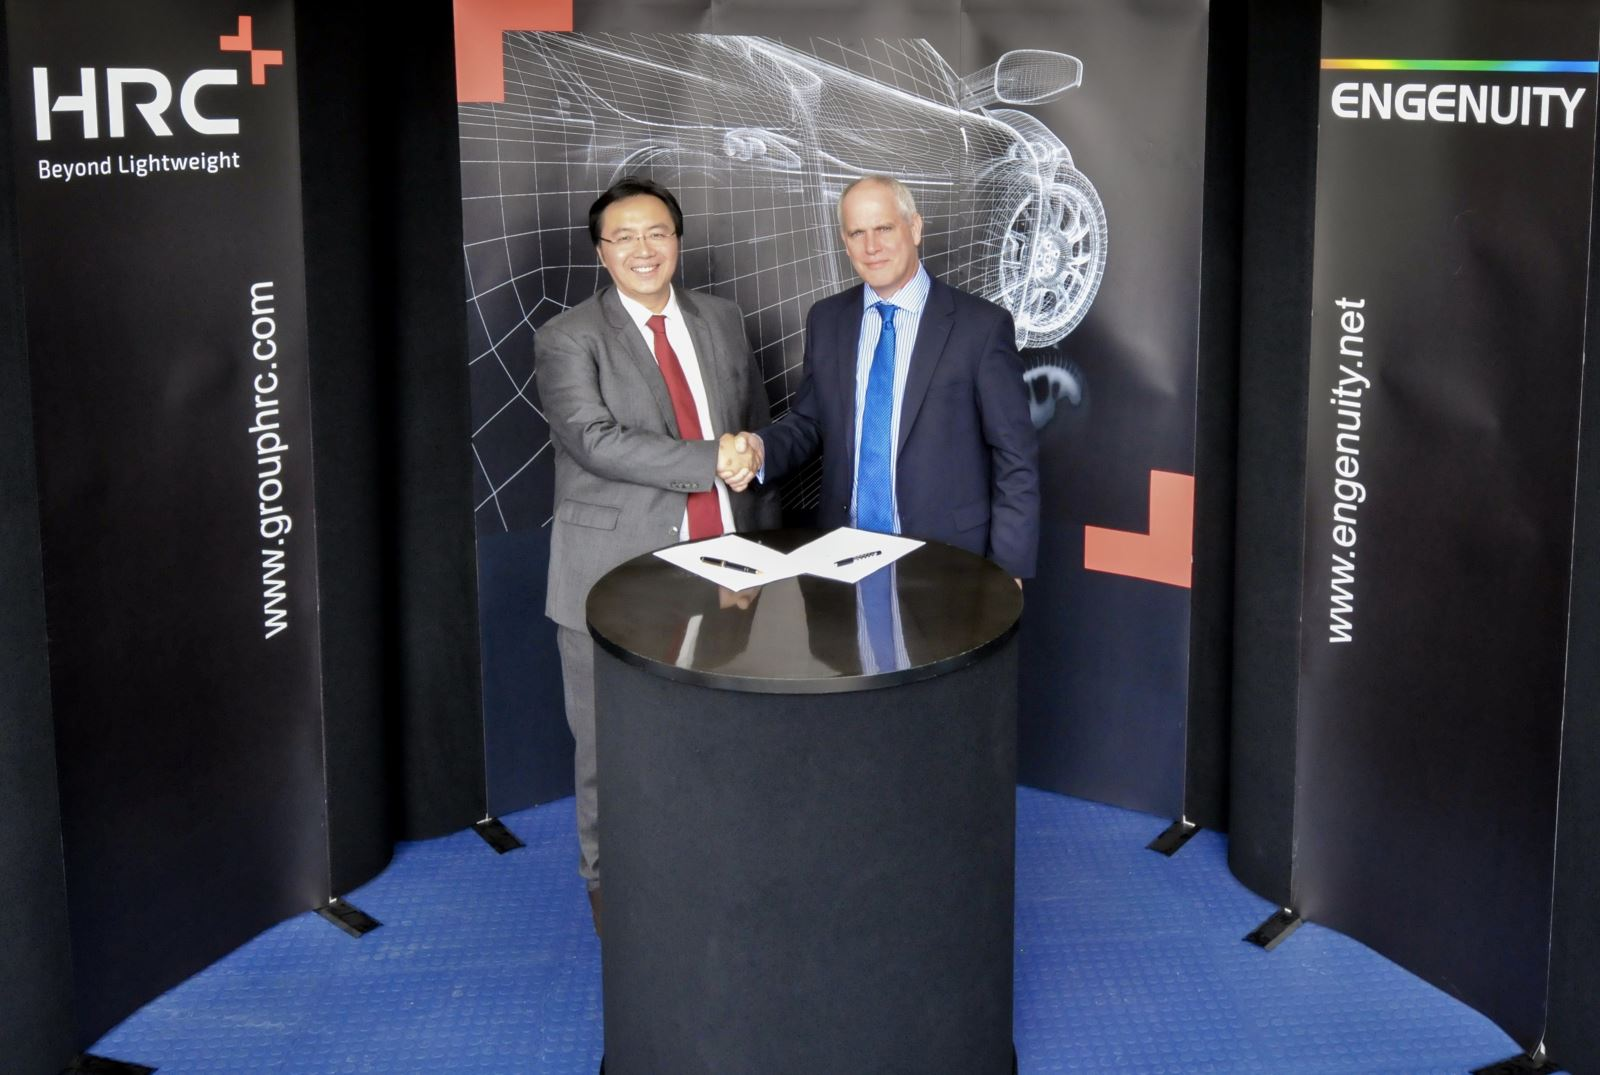 Acquired by HRC, Top UK Composite Material Engineering Company Engenuity Officially Entering China